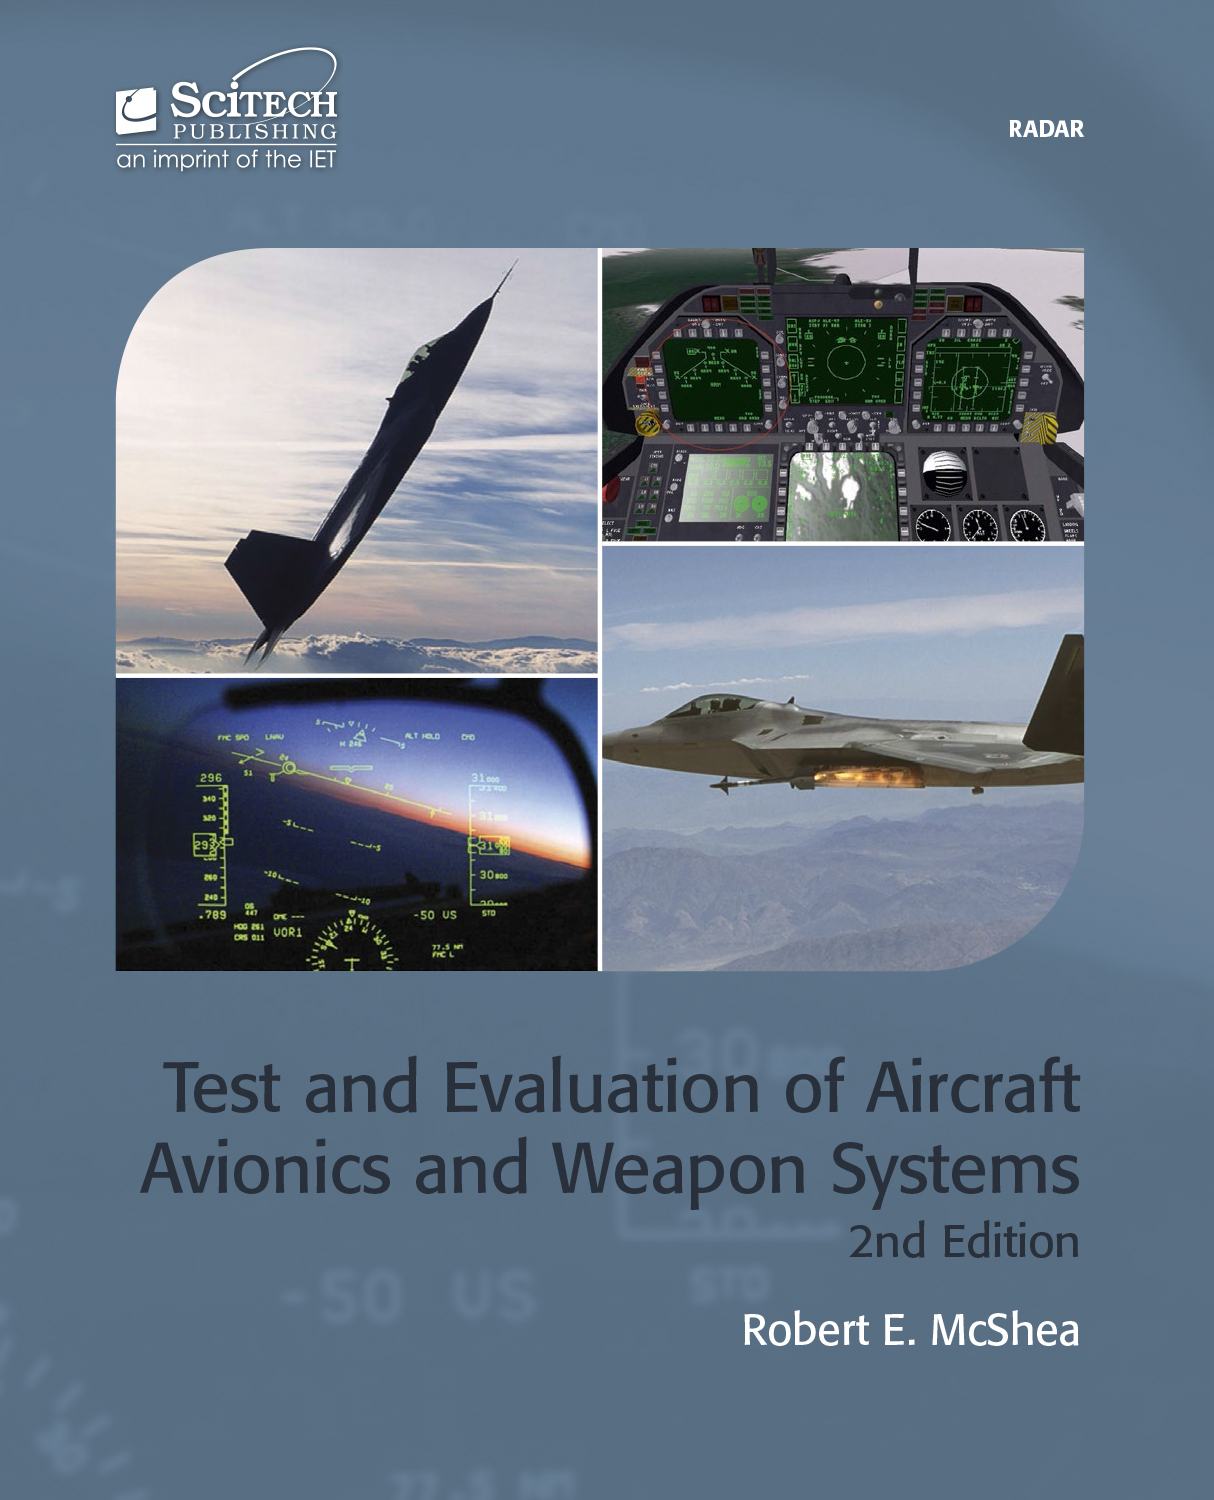 Test and Evaluation of Aircraft Avionics and Weapon Systems, 2nd Edition